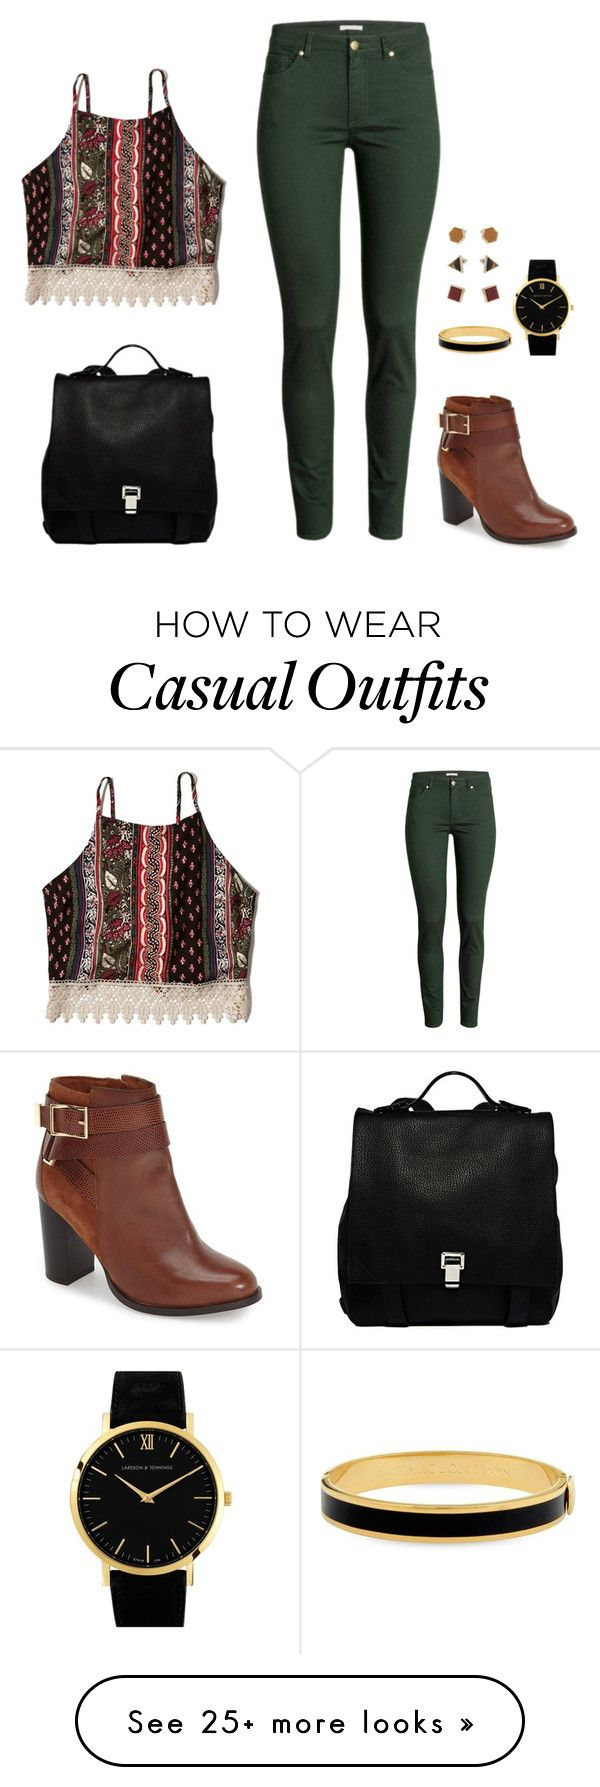 """Boho Casual"" by jessica-leone on Polyvore featuring H&M, Abercrombie & Fitch, Topshop, Proenza Schouler, Larsson & Jennings and Halcyon Days"